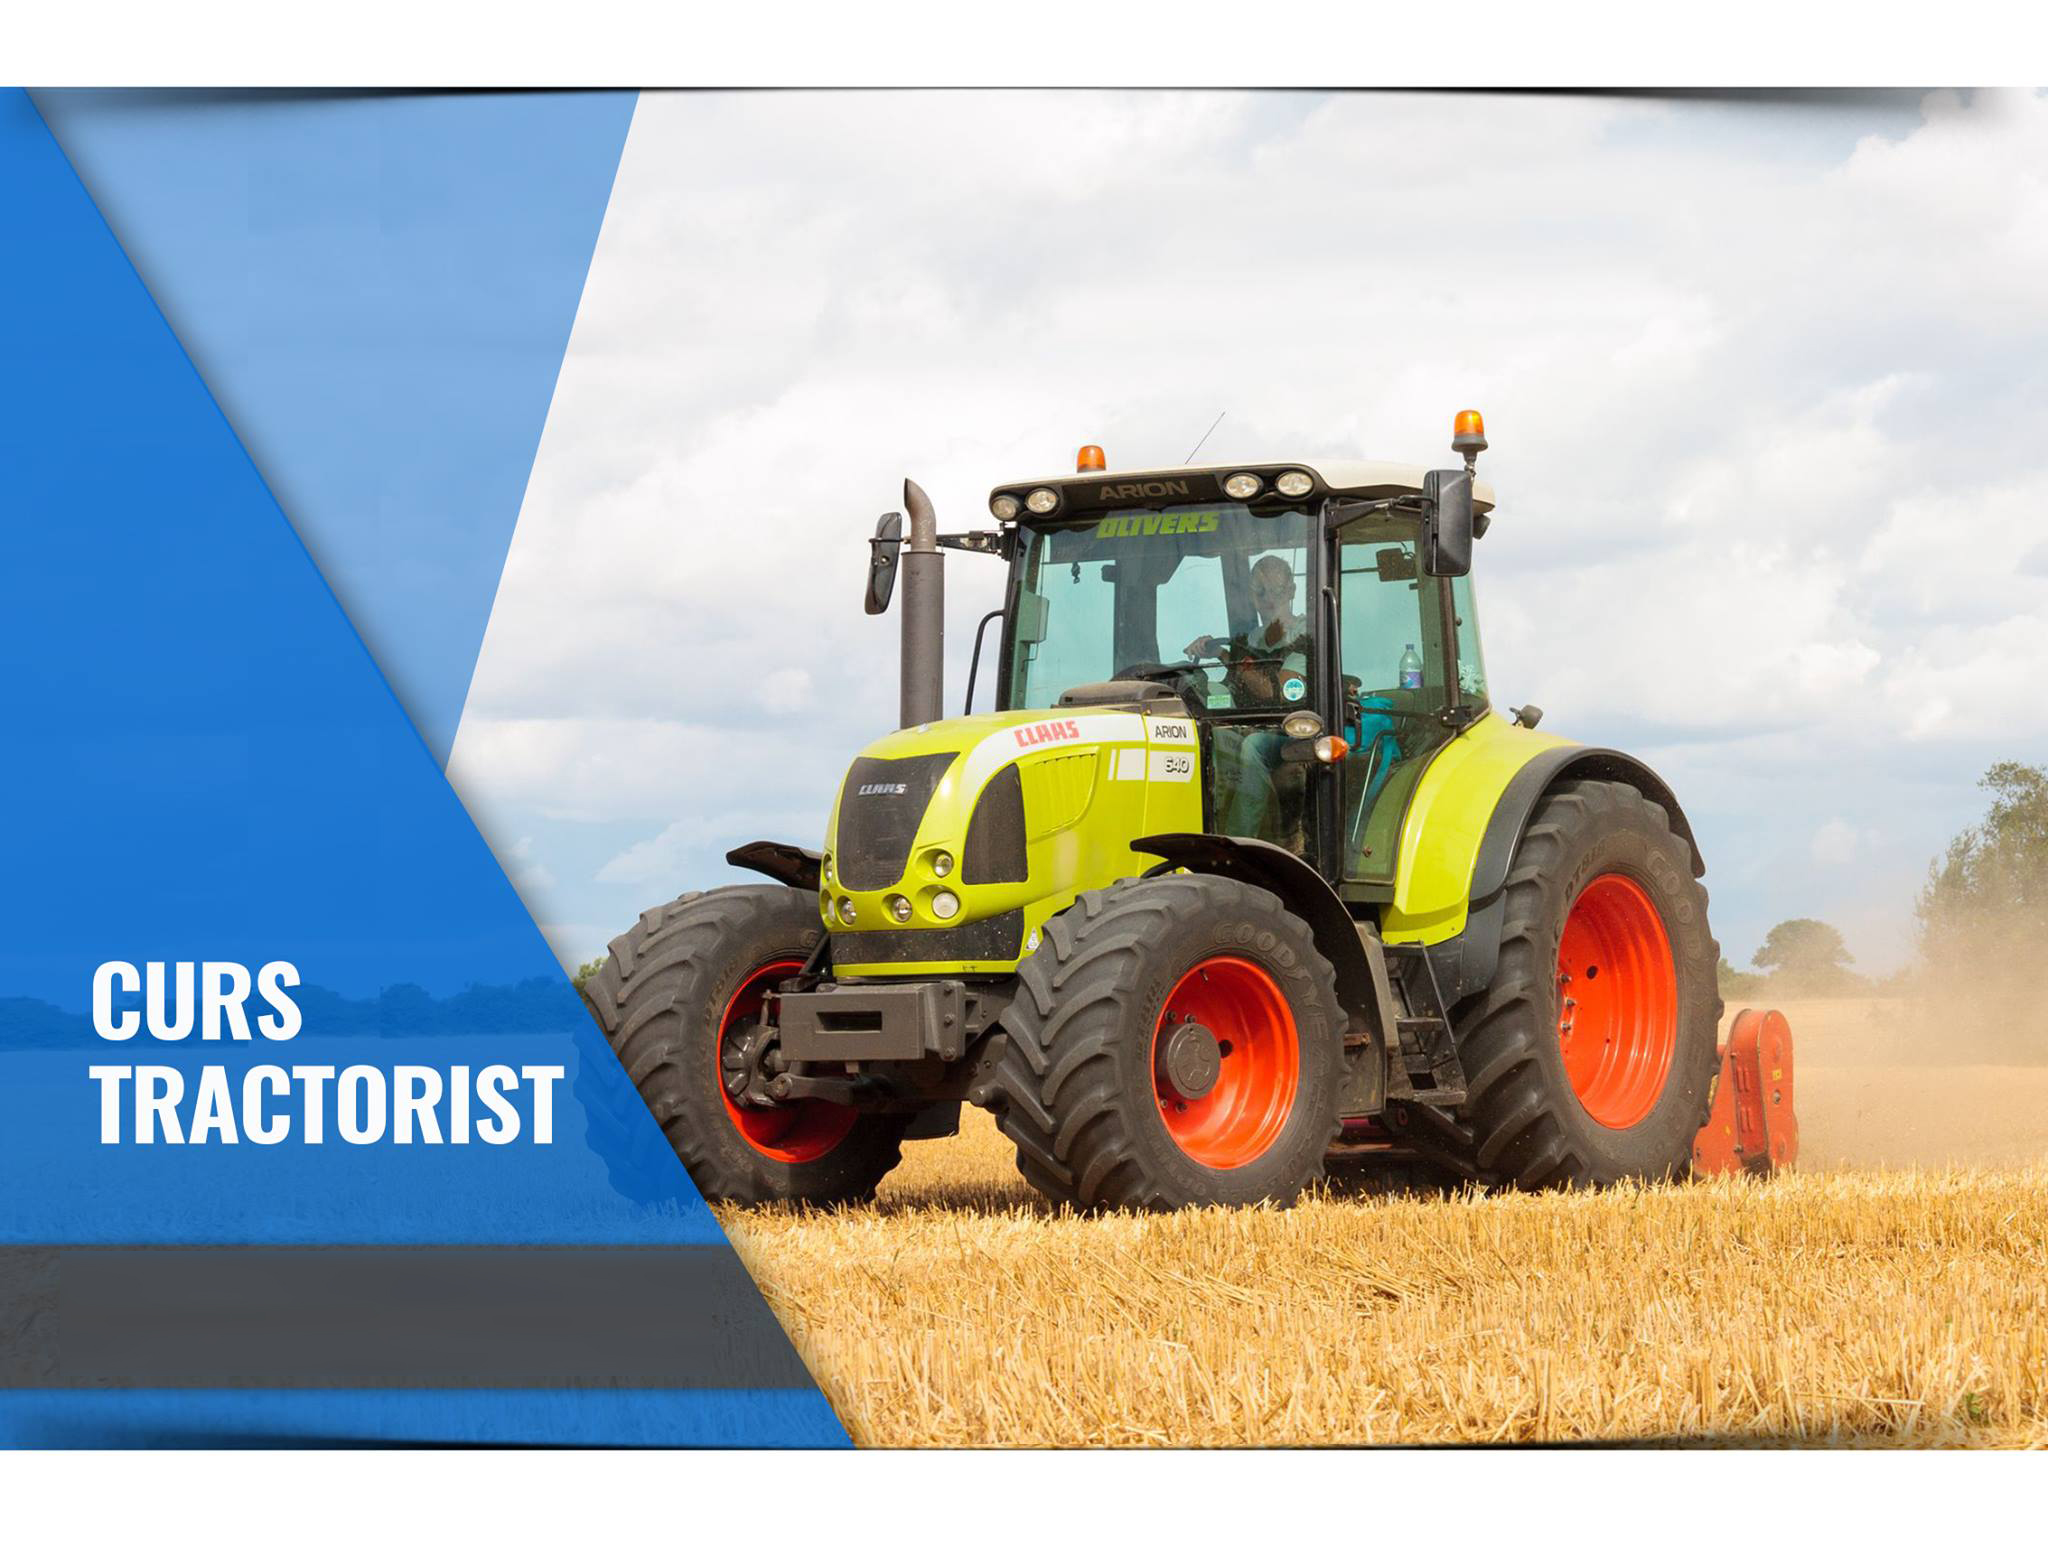 curs-tractorist